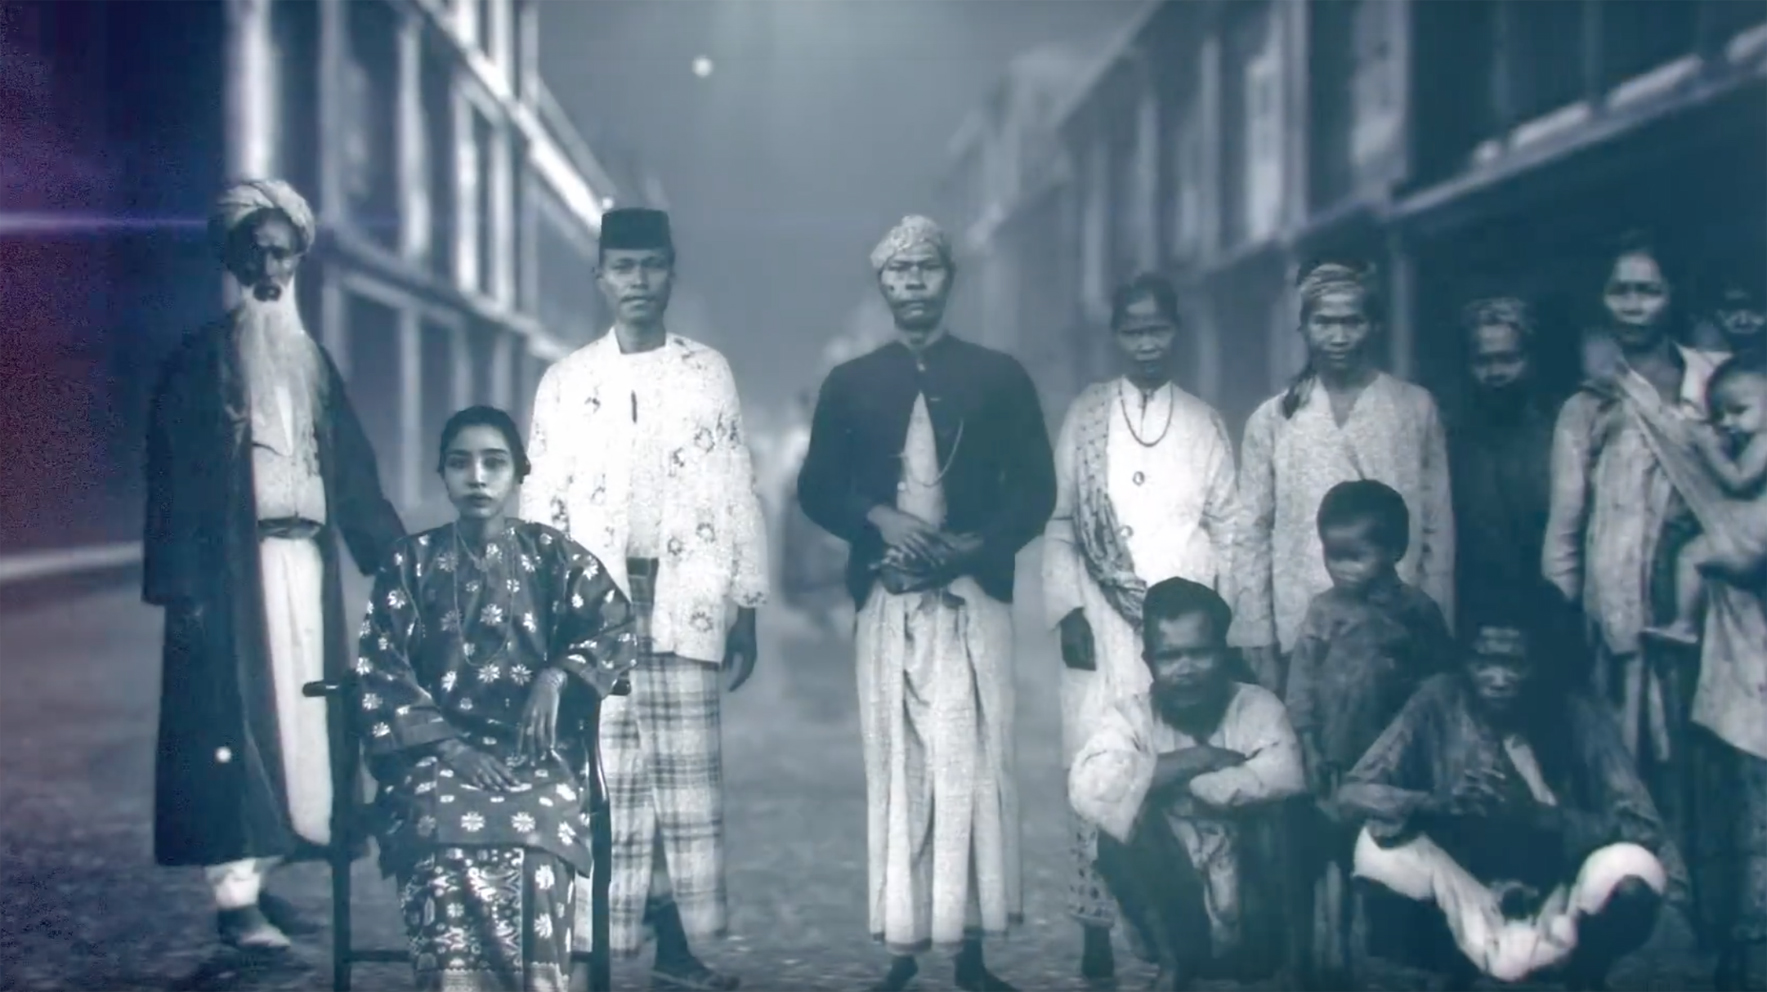 Singapore Bicentennial's new film from J. Walter Thompson commemorates not 200, but 700 years of history